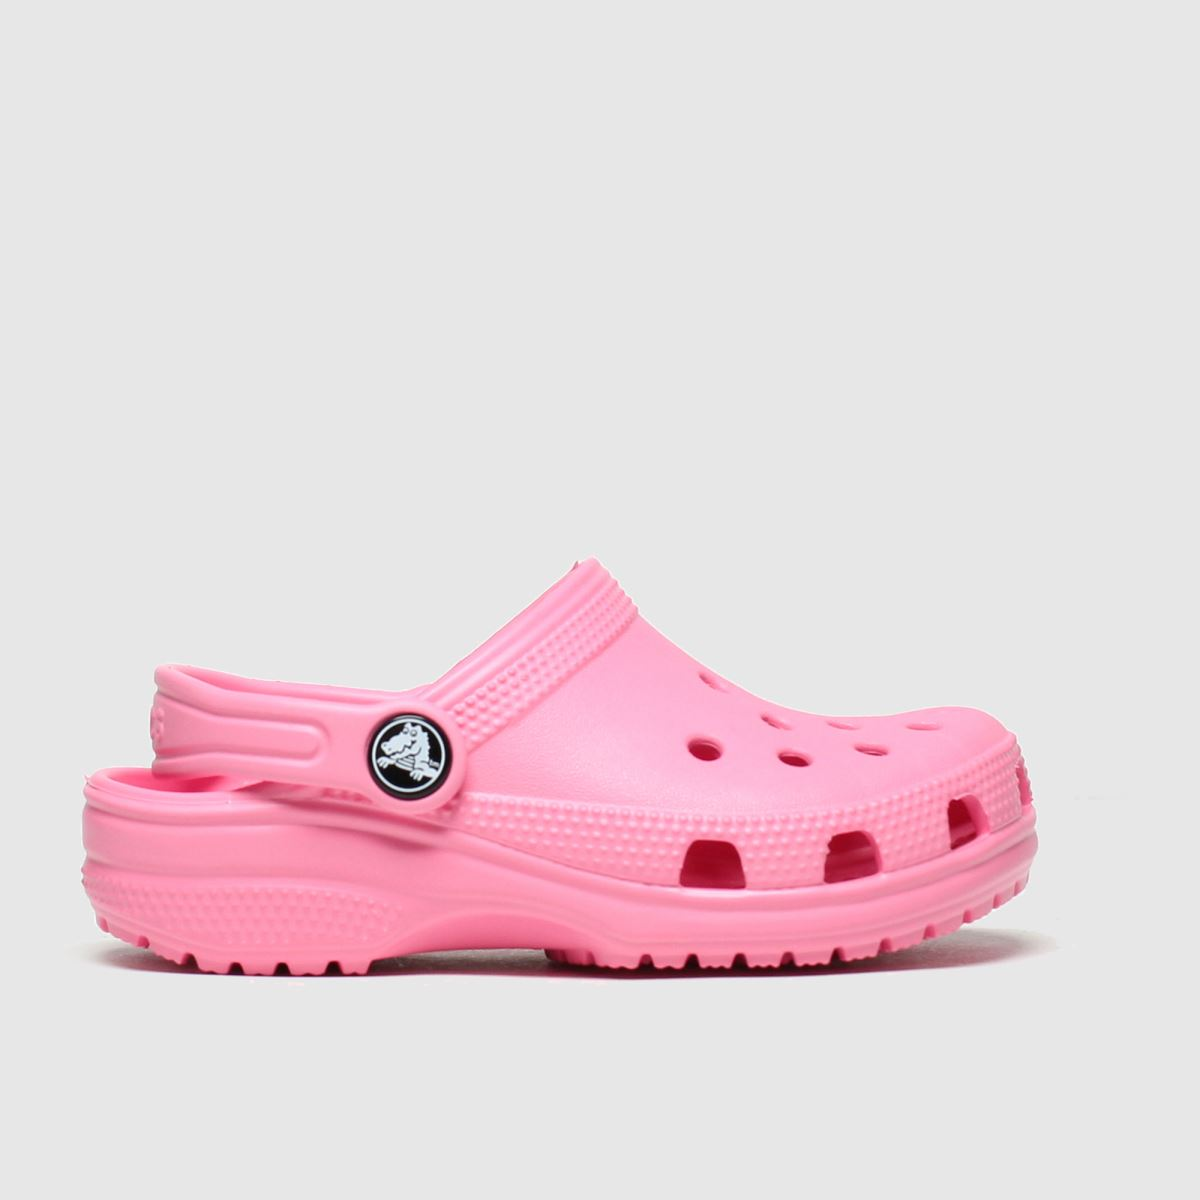 Crocs Pink Classic Clog Trainers Toddler